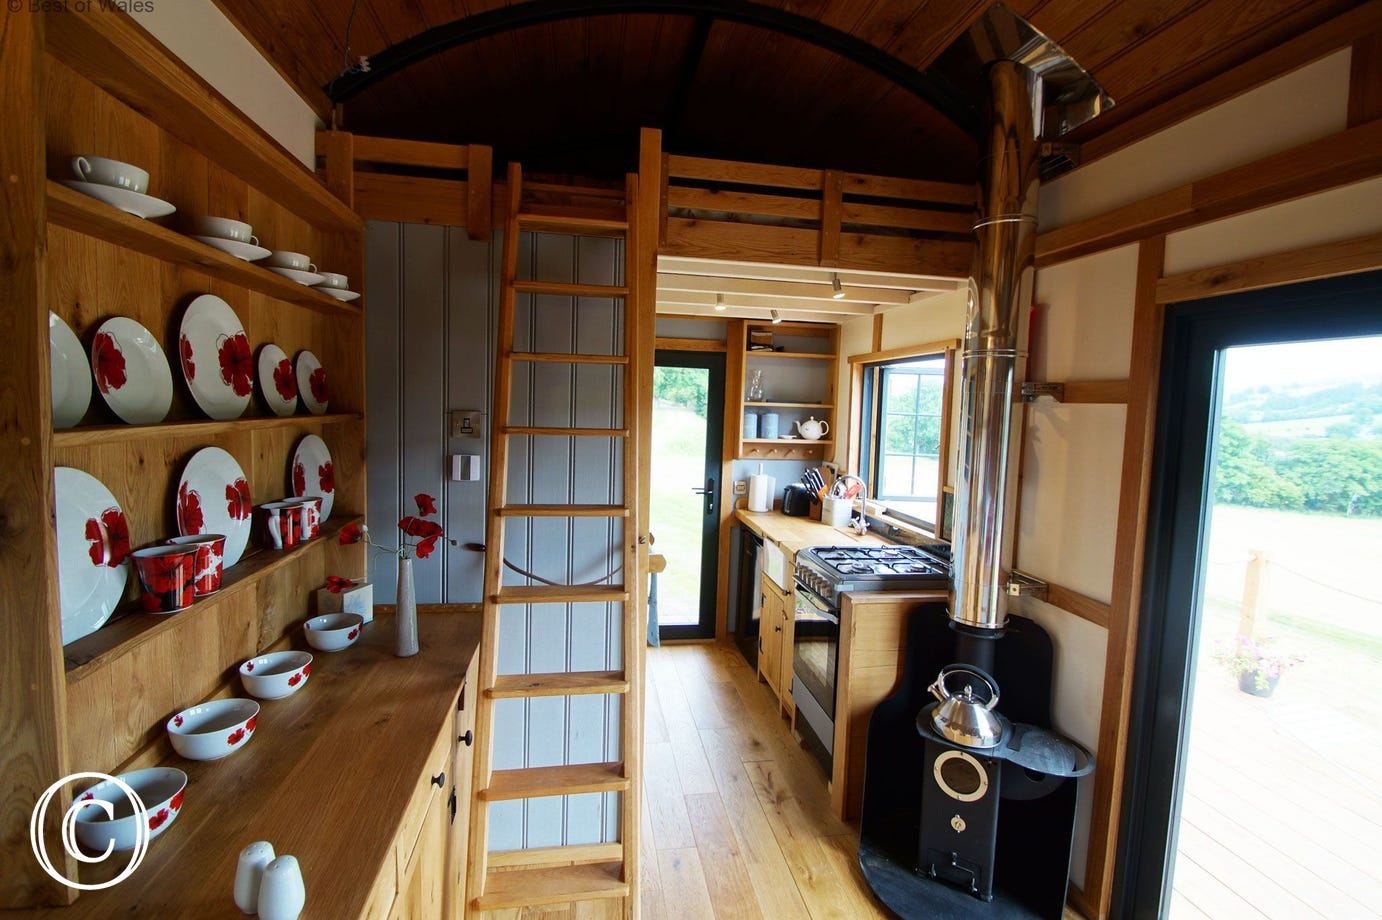 Wood burning stove and fully equipped kitchen unit.